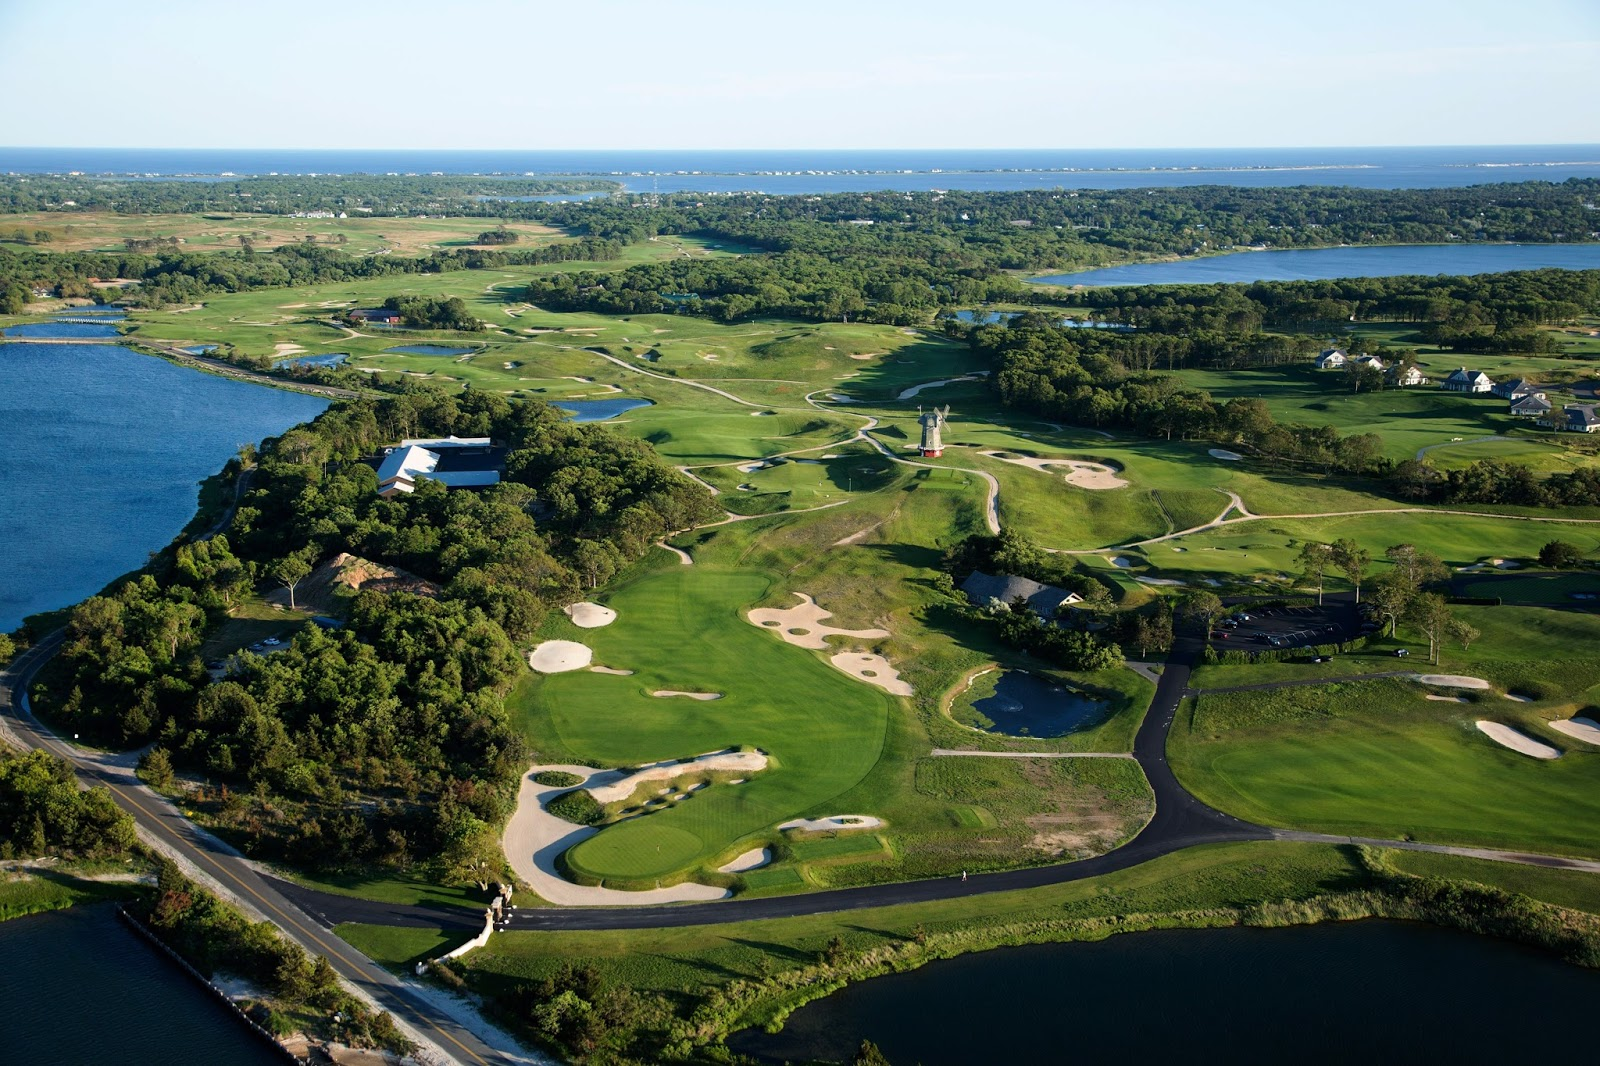 Top 10 Most Beautiful Golf Courses in The World